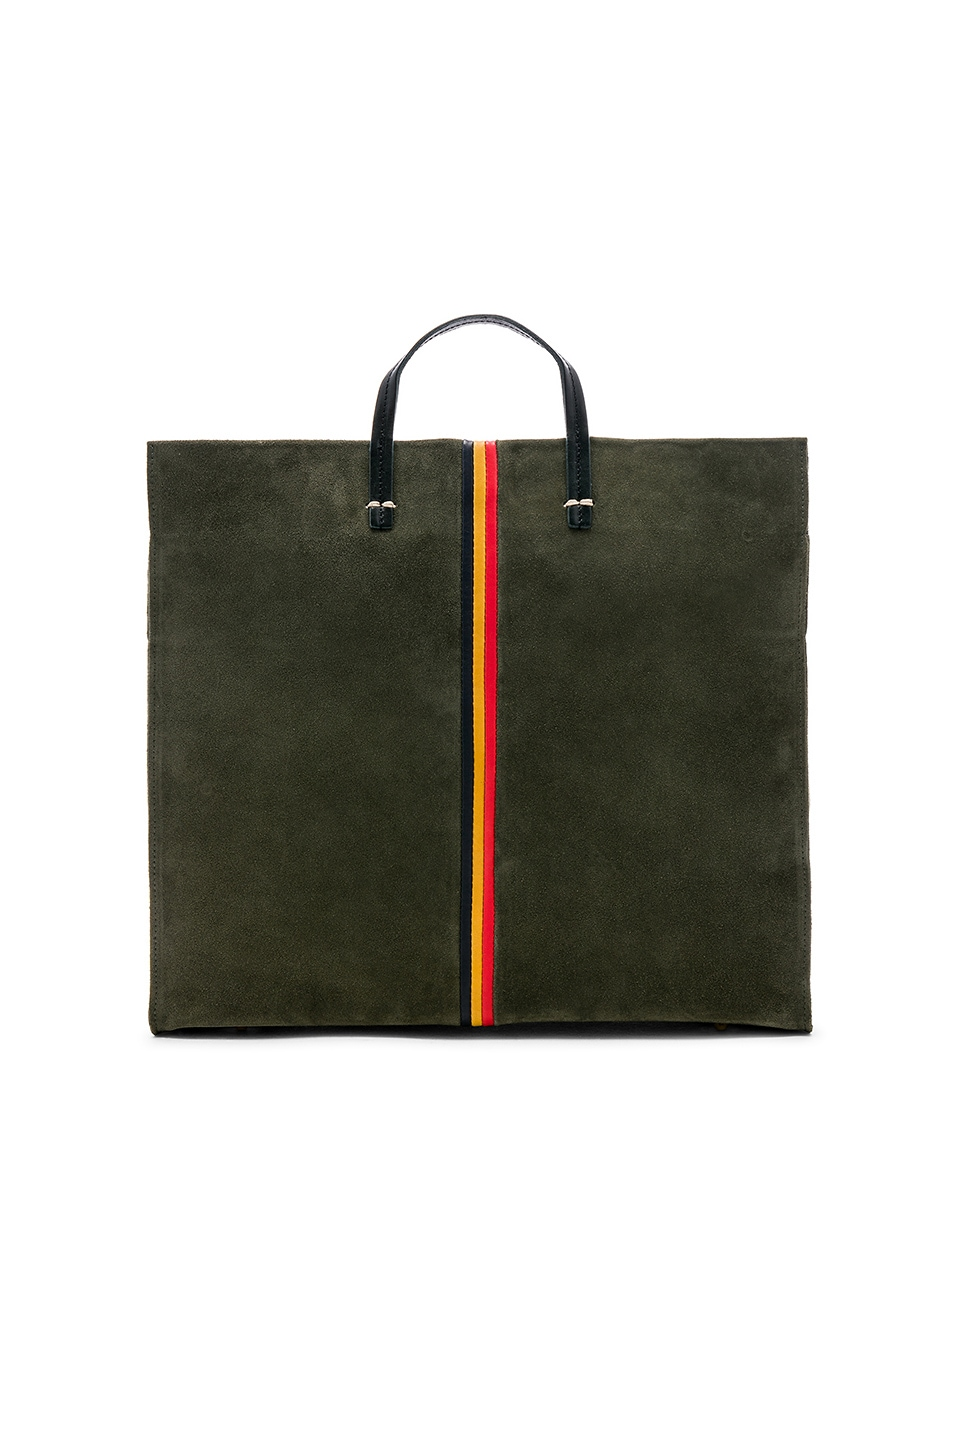 Clare V. Simple Tote in Army Suede with Navy, Marigold & Red